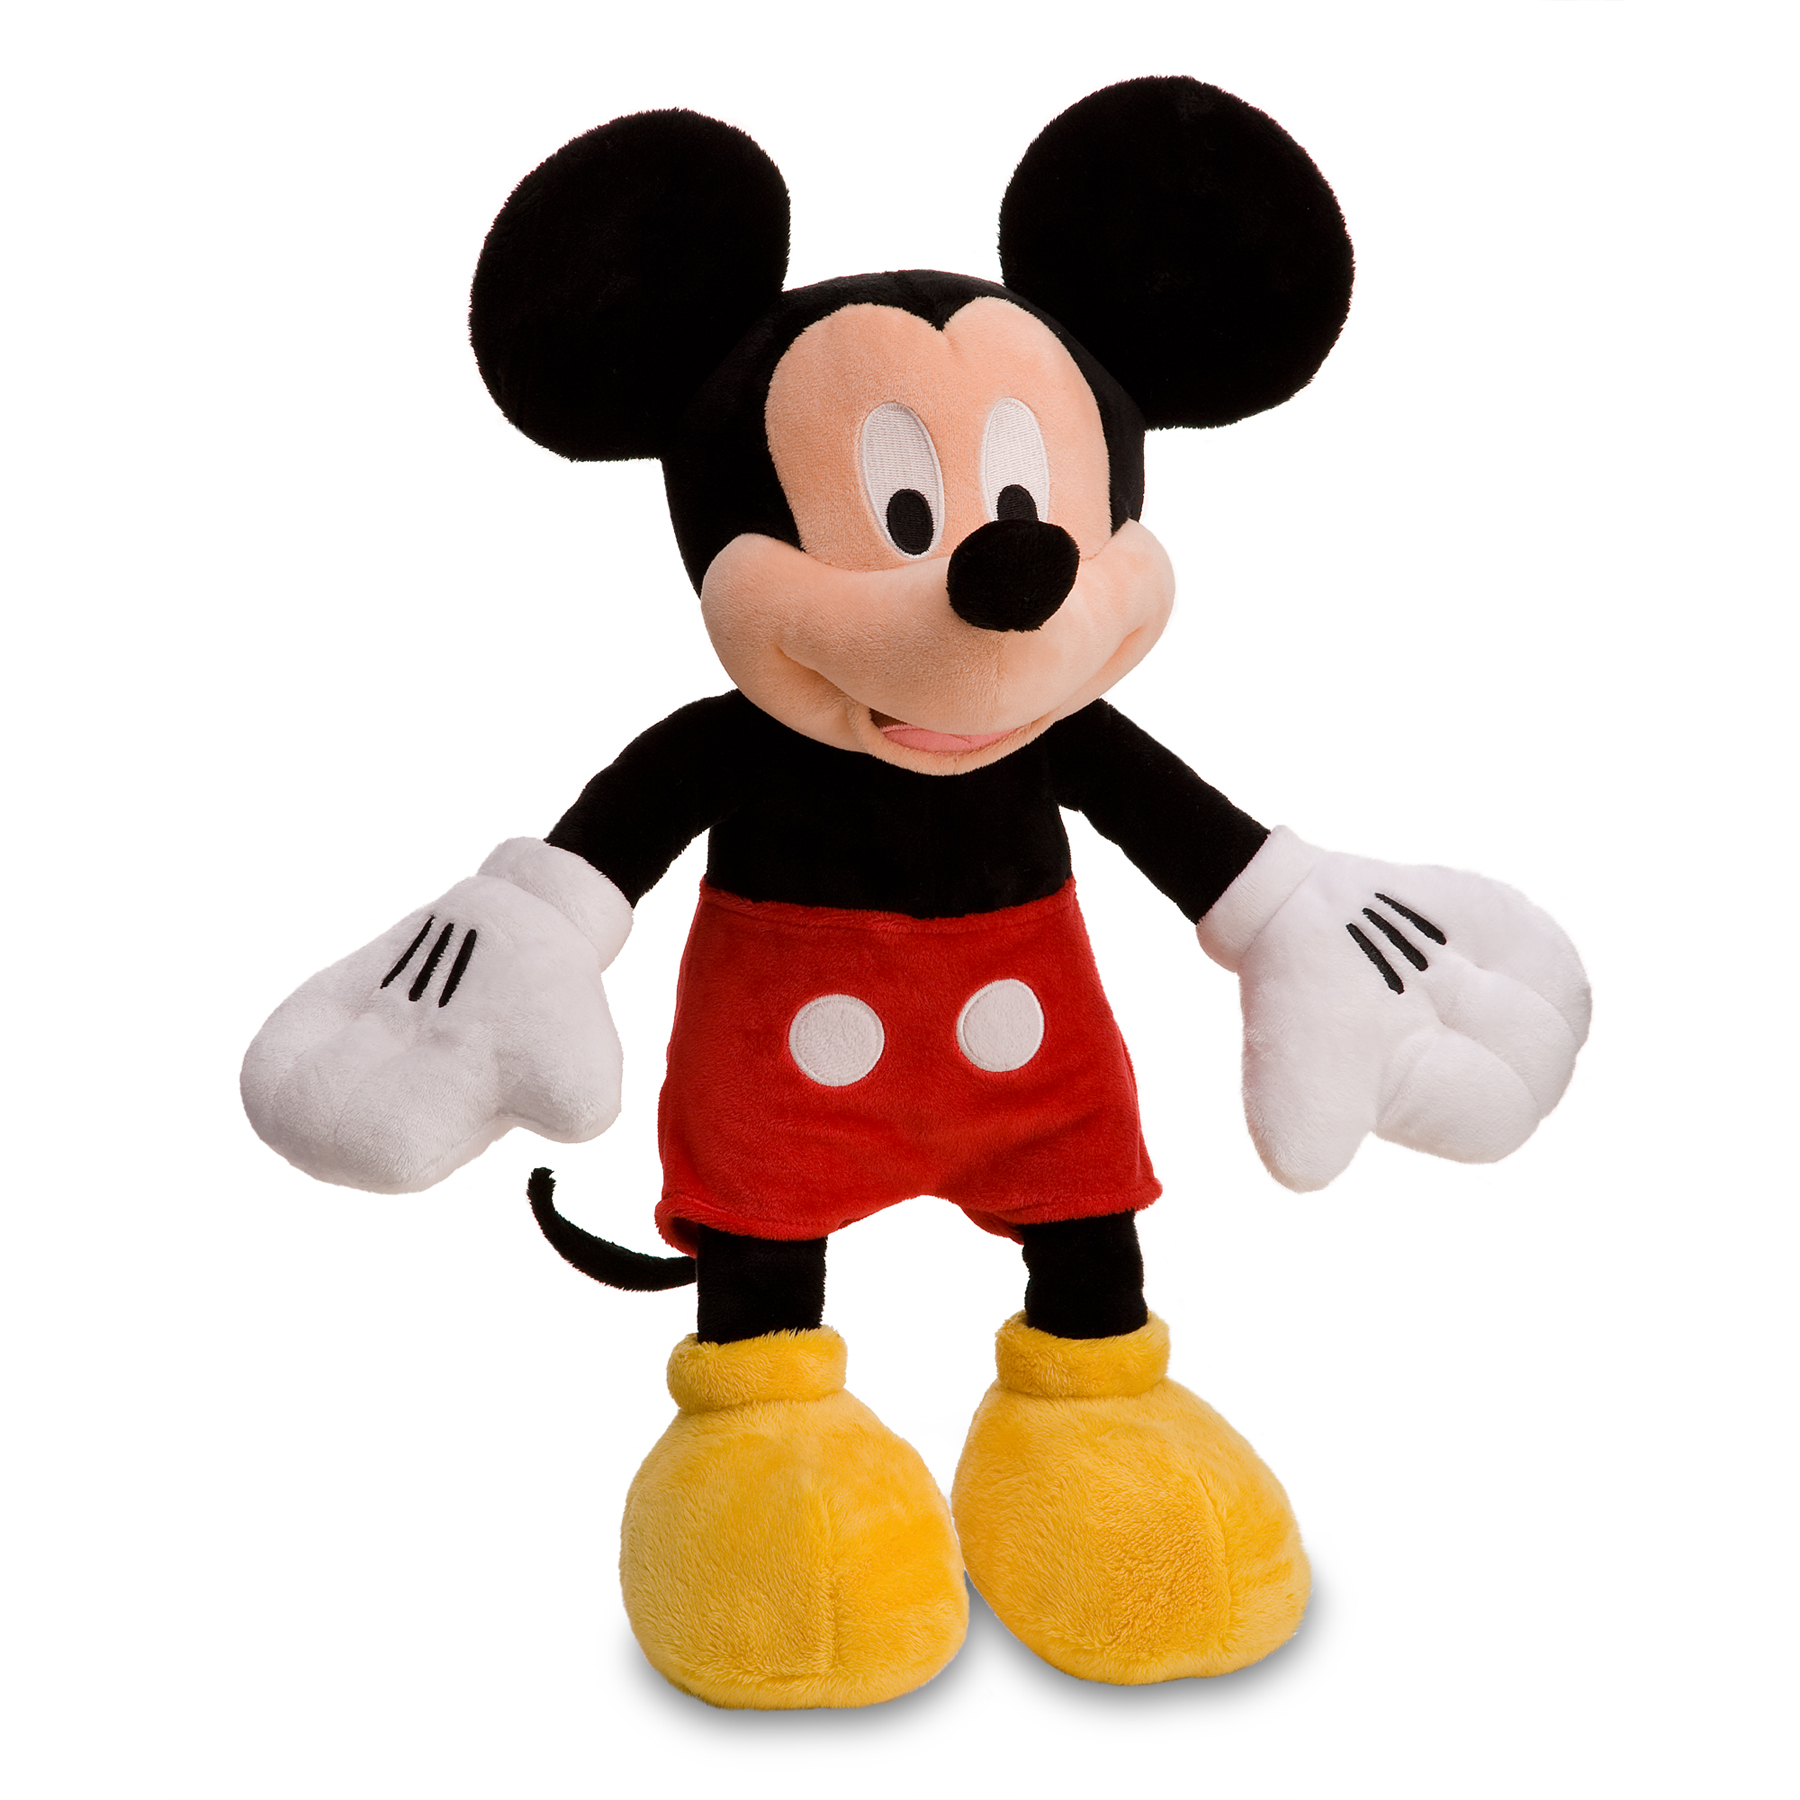 Mickey Mouse Toys : Mickey mouse supermariologan wiki fandom powered by wikia